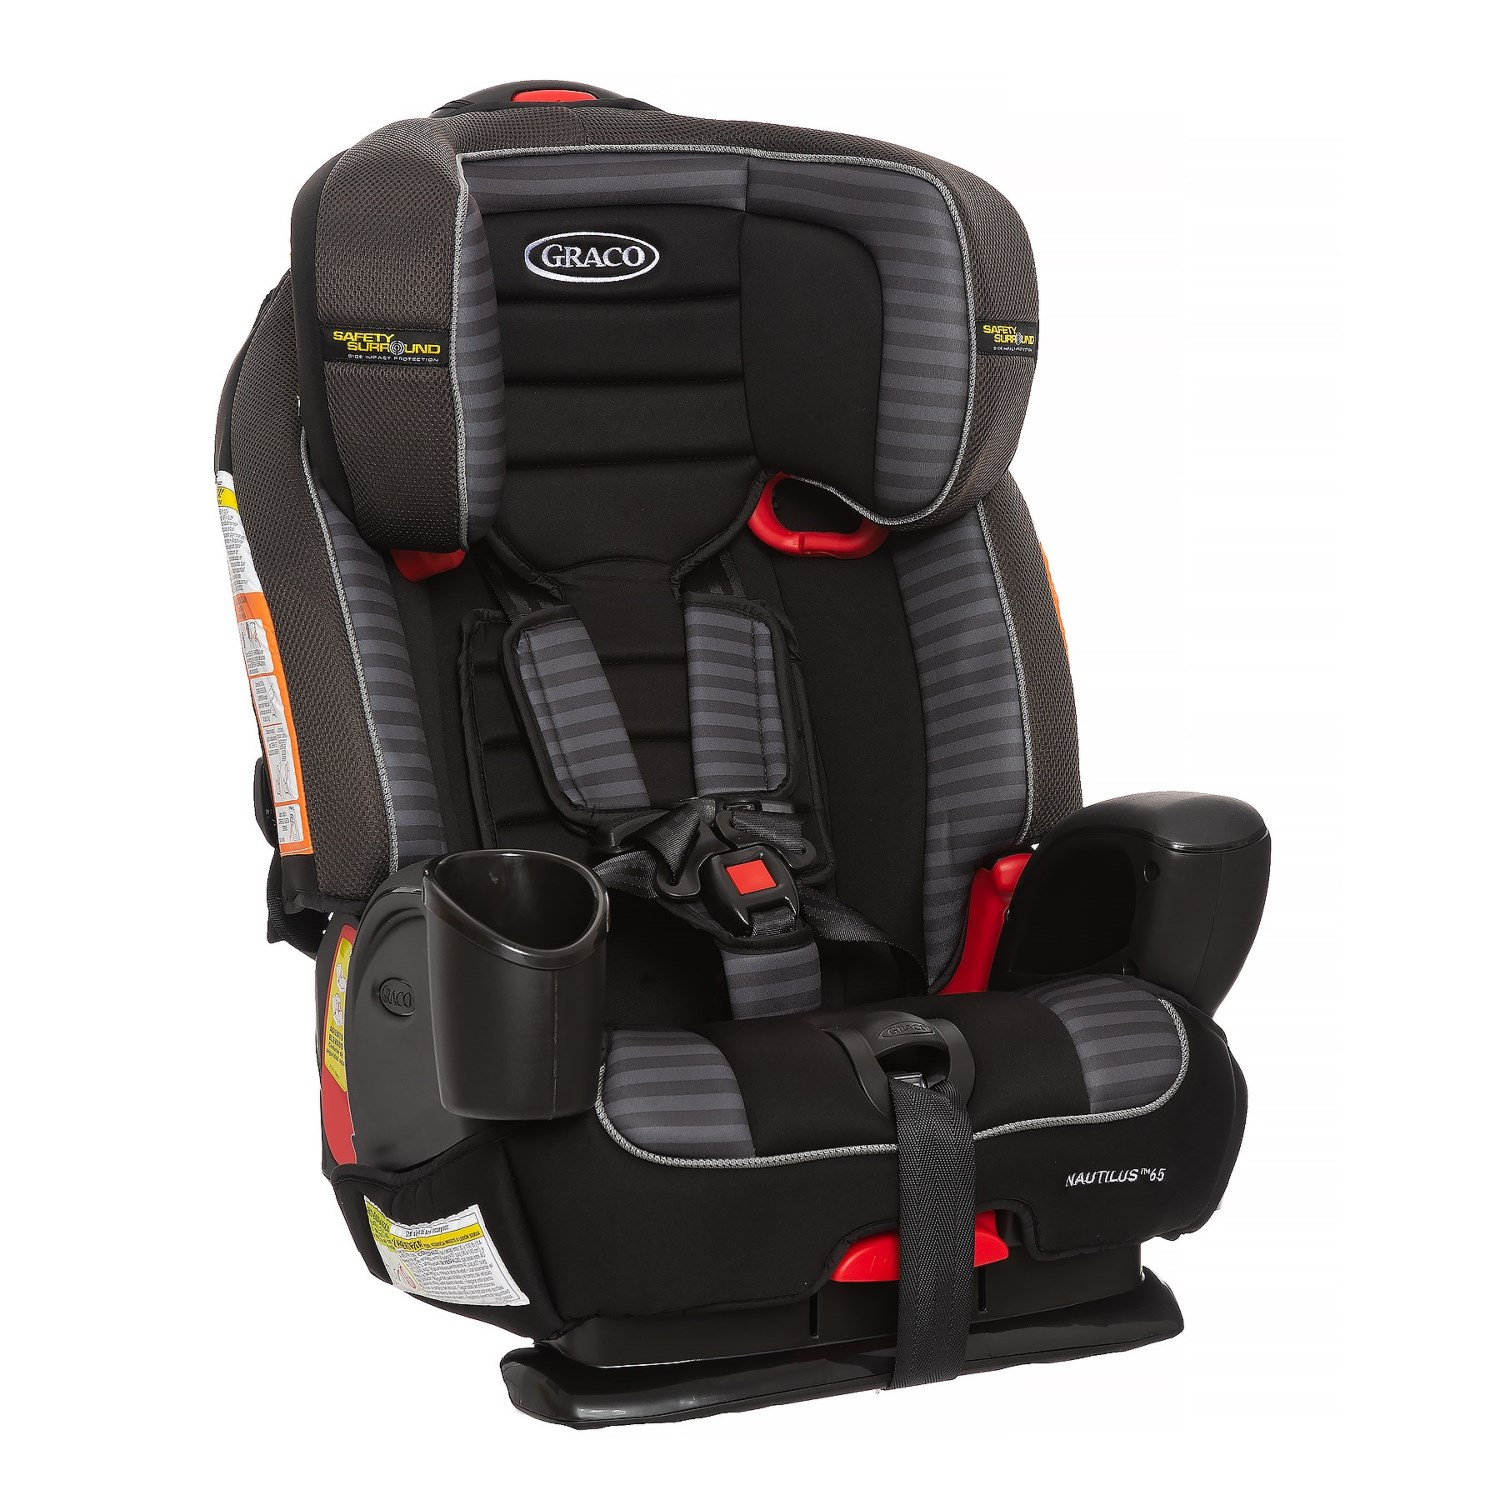 Graco Nautilus 3 In 1 Car Seat With Safety Surround >> Graco Lustre Nautilus 65 3 In 1 Harness Booster Seat